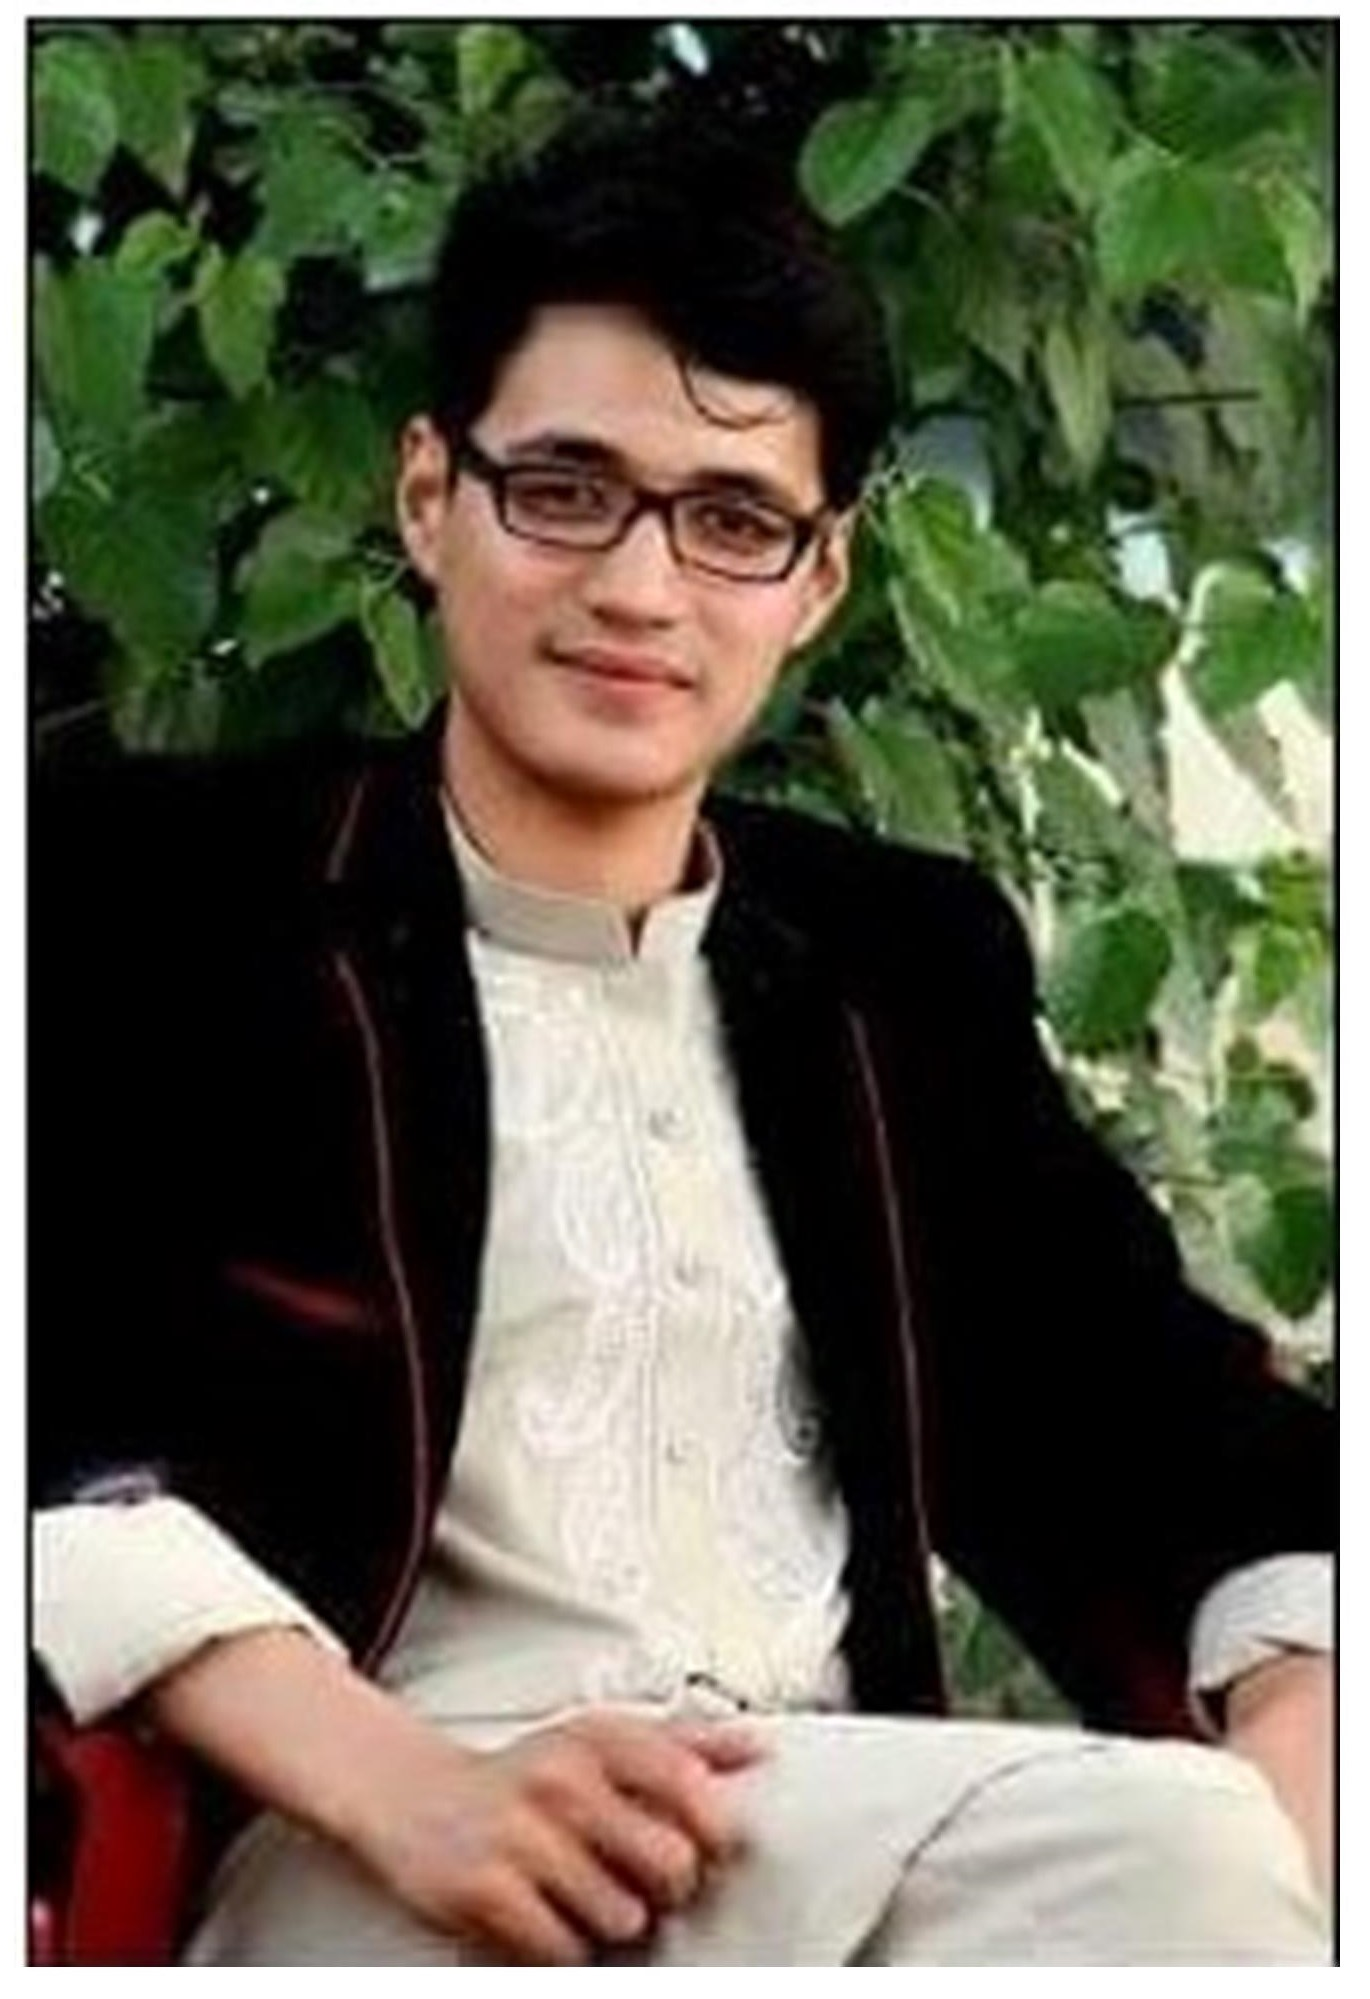 Shoaib Mehryar is a former student of the Star Educational Society in Quetta, Pakistan. He studies economics at Bakhtar University in Kabul.